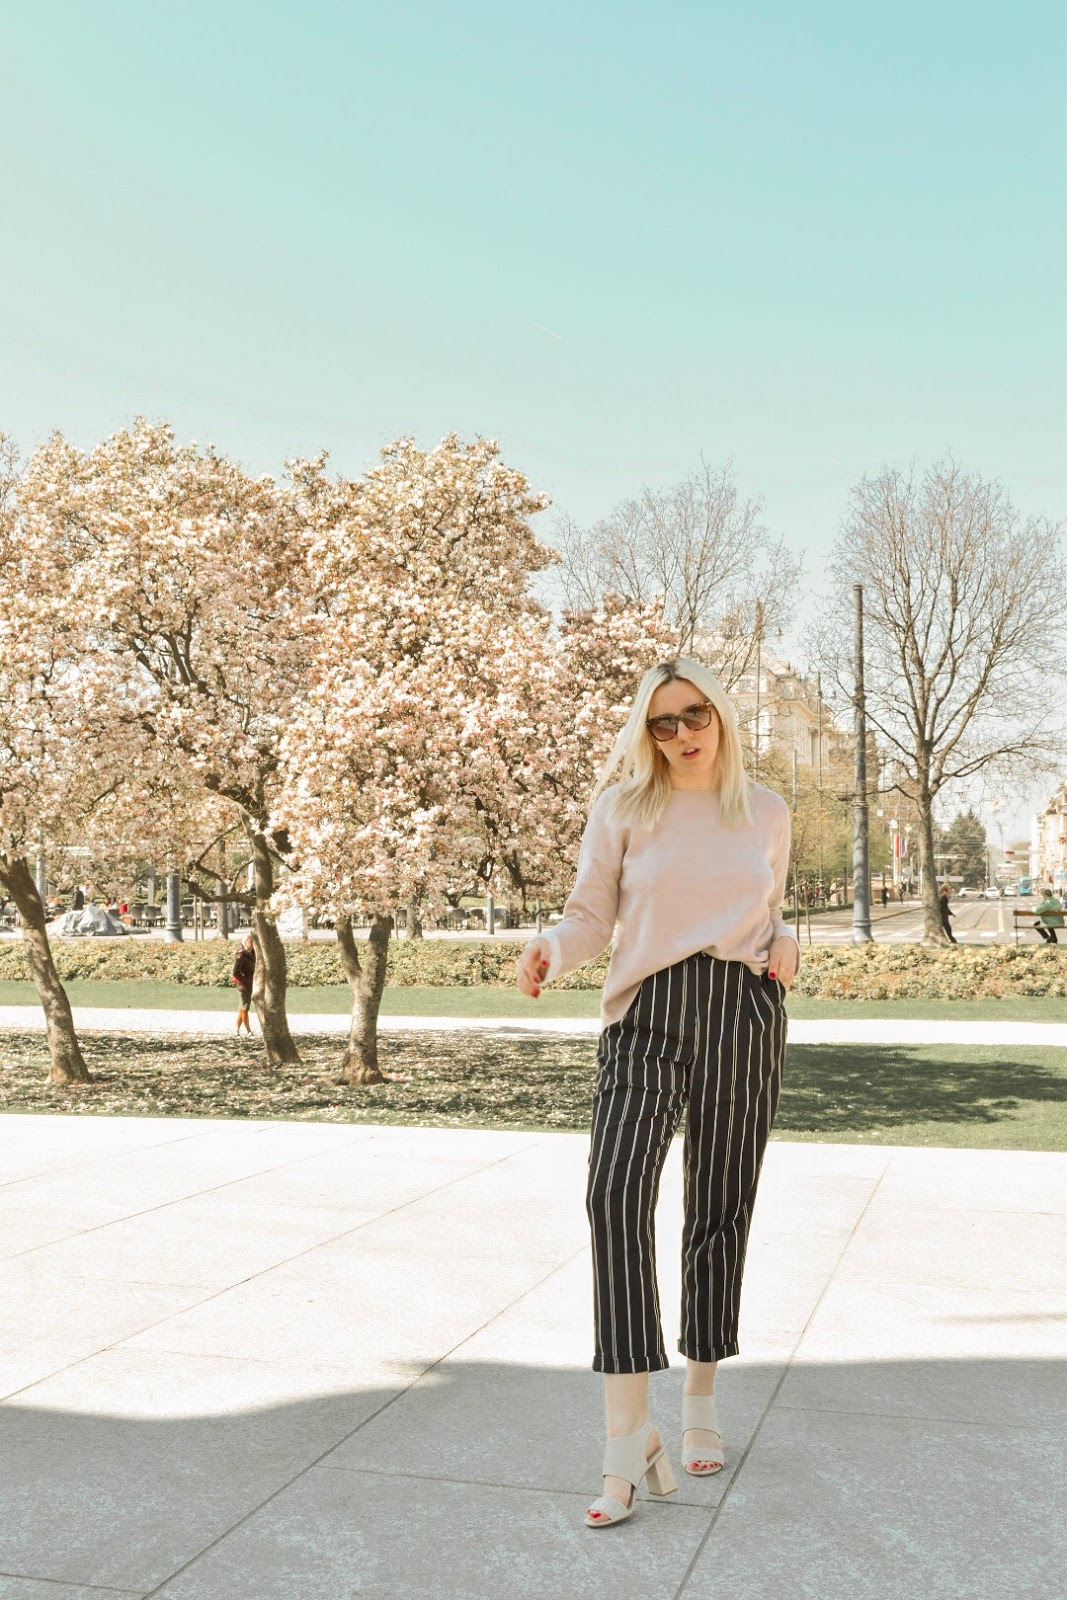 Pink sweater and striped pants outfit